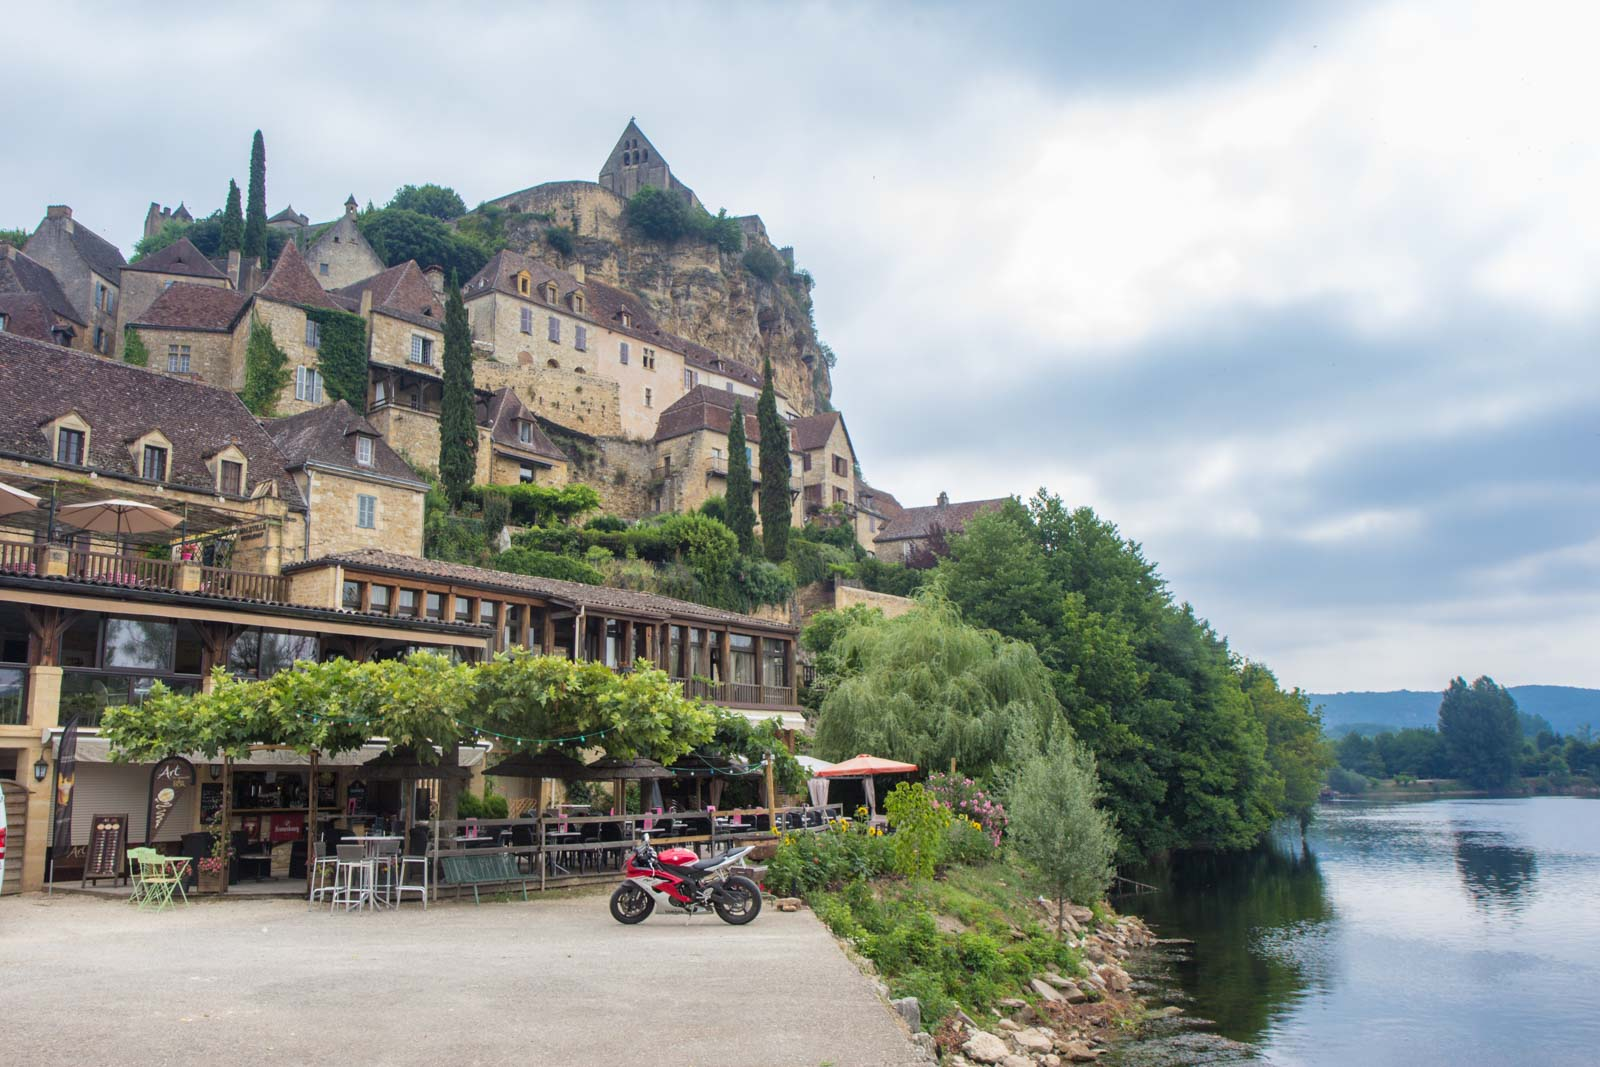 Walking tour with Headwater Holidays, Dordogne, France